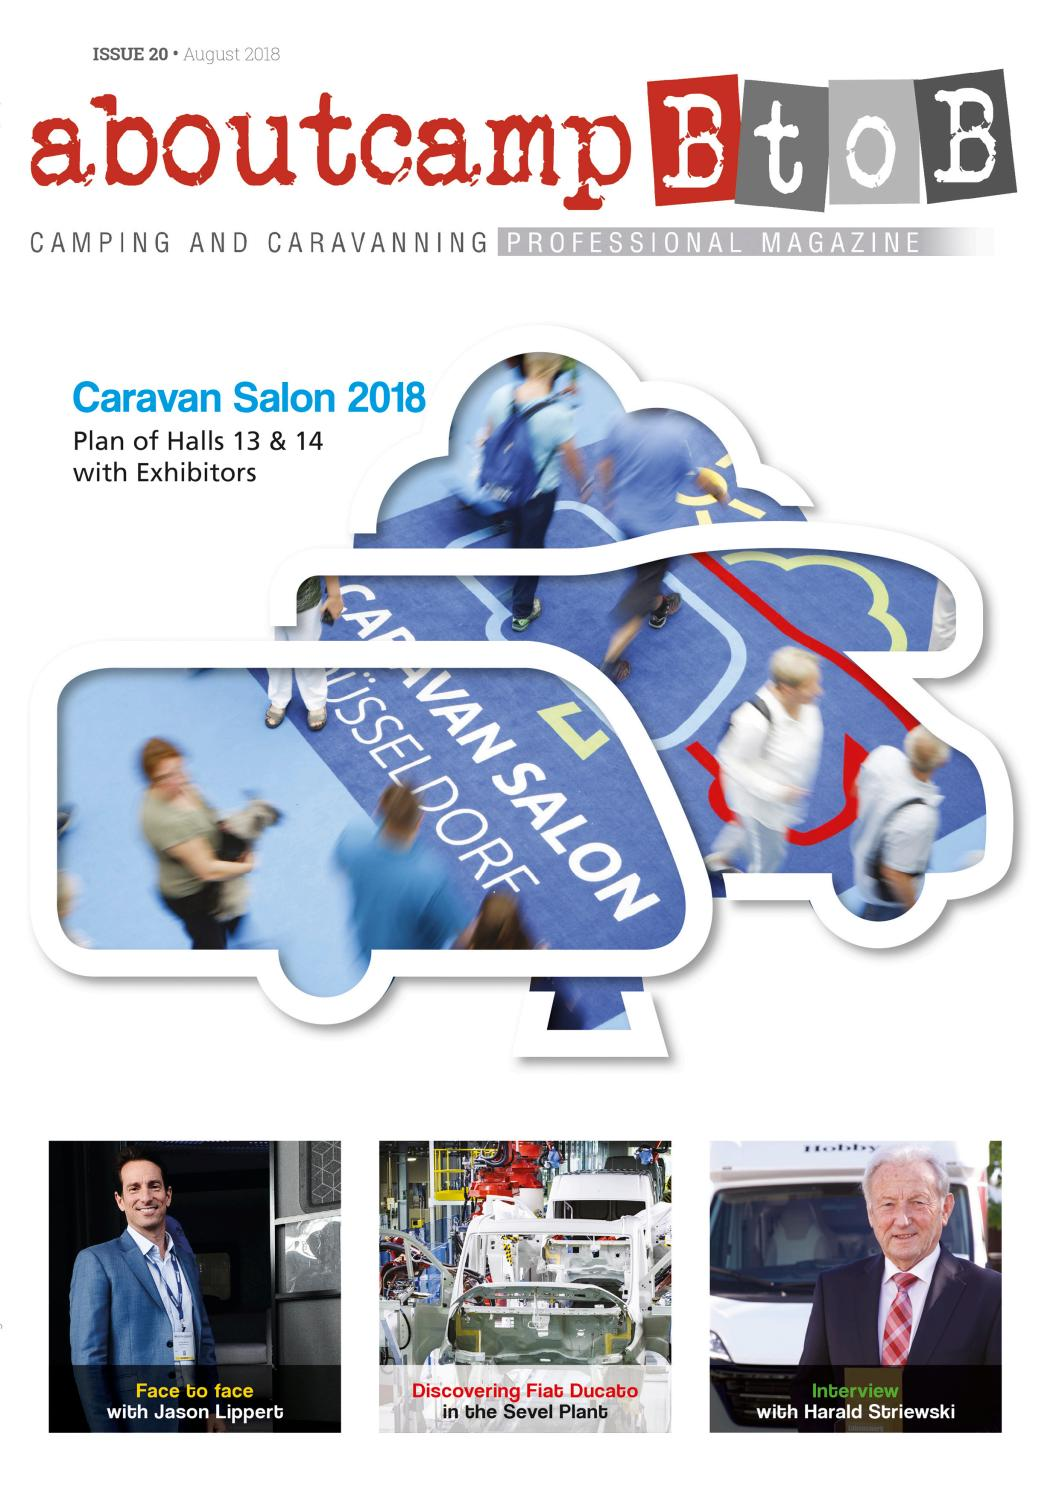 Aboutcamp Btob Issue 20 By Fuori Media Srl Issuu Donwload Solve Elec 25 Free Electronic Electric Tool Xtronic